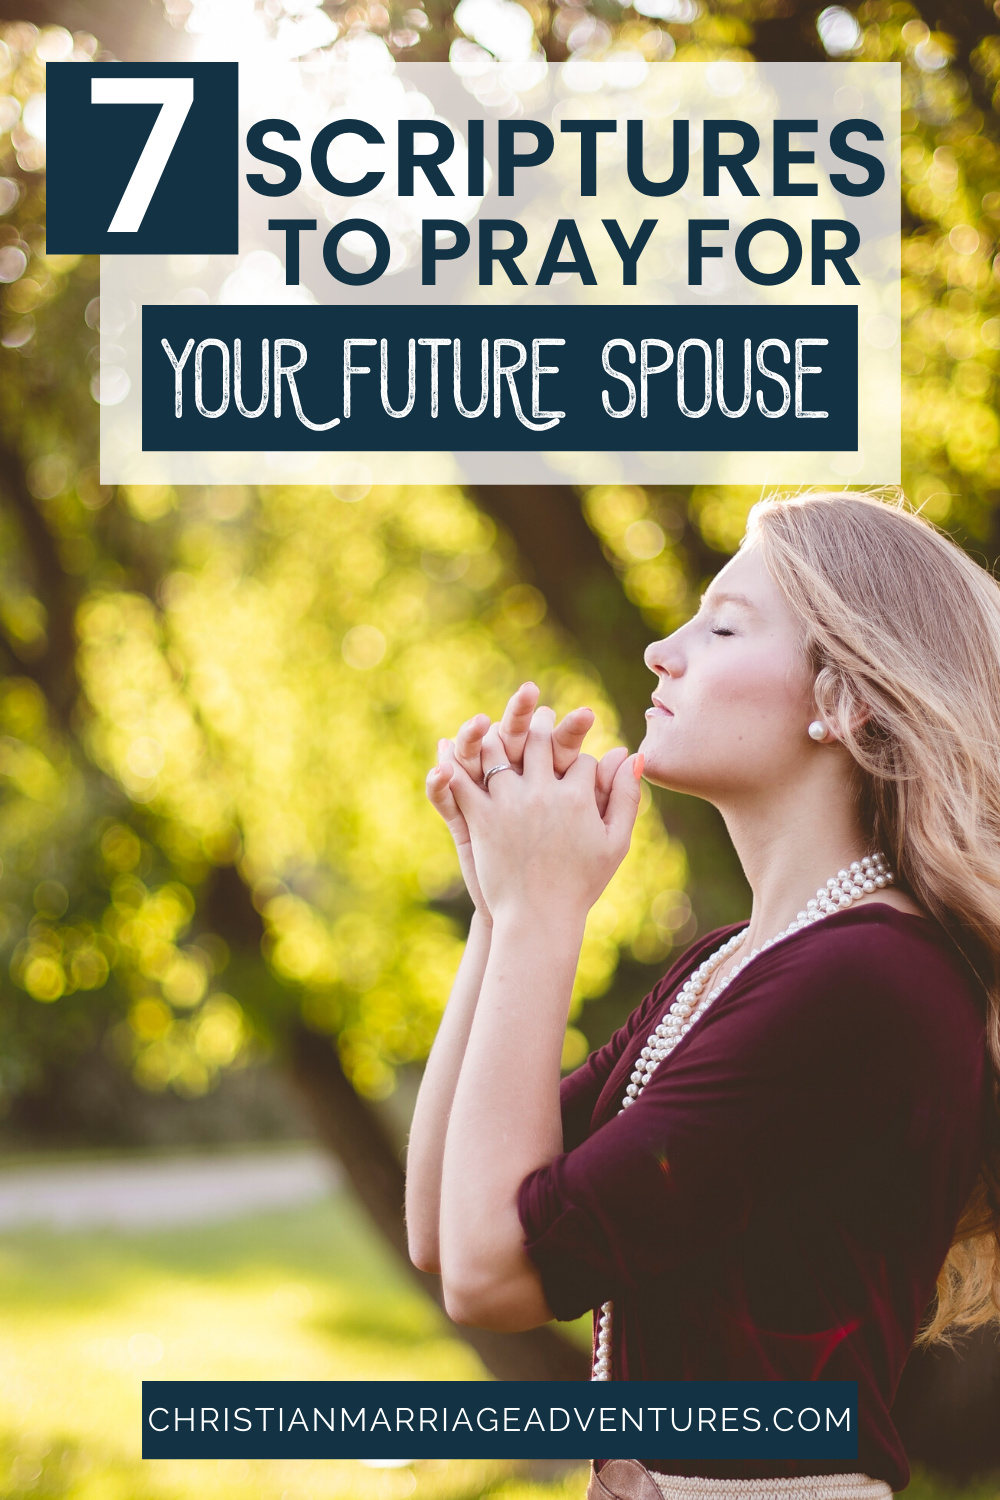 One of the wisest things you can do when you are single is to find Scriptures to pray for your future spouse. Come see the key areas you should be covering.